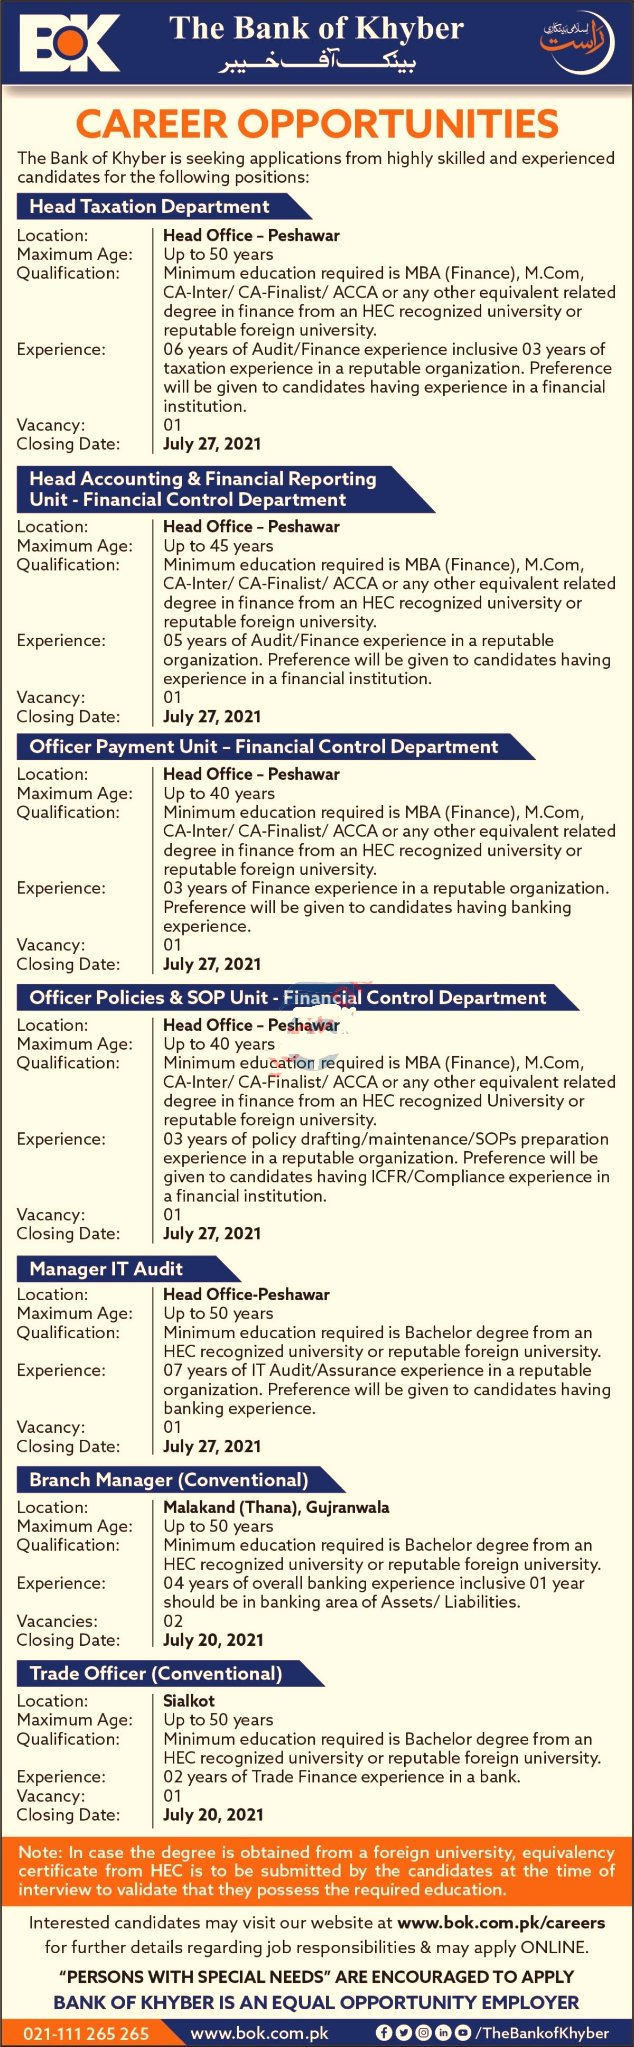 The Bank of Khyber BOK Jobs 2021 for Manager & Trade Officer, (بینک آف خیبر کی نوکریاں), latest jobs, bank of khyber jobs